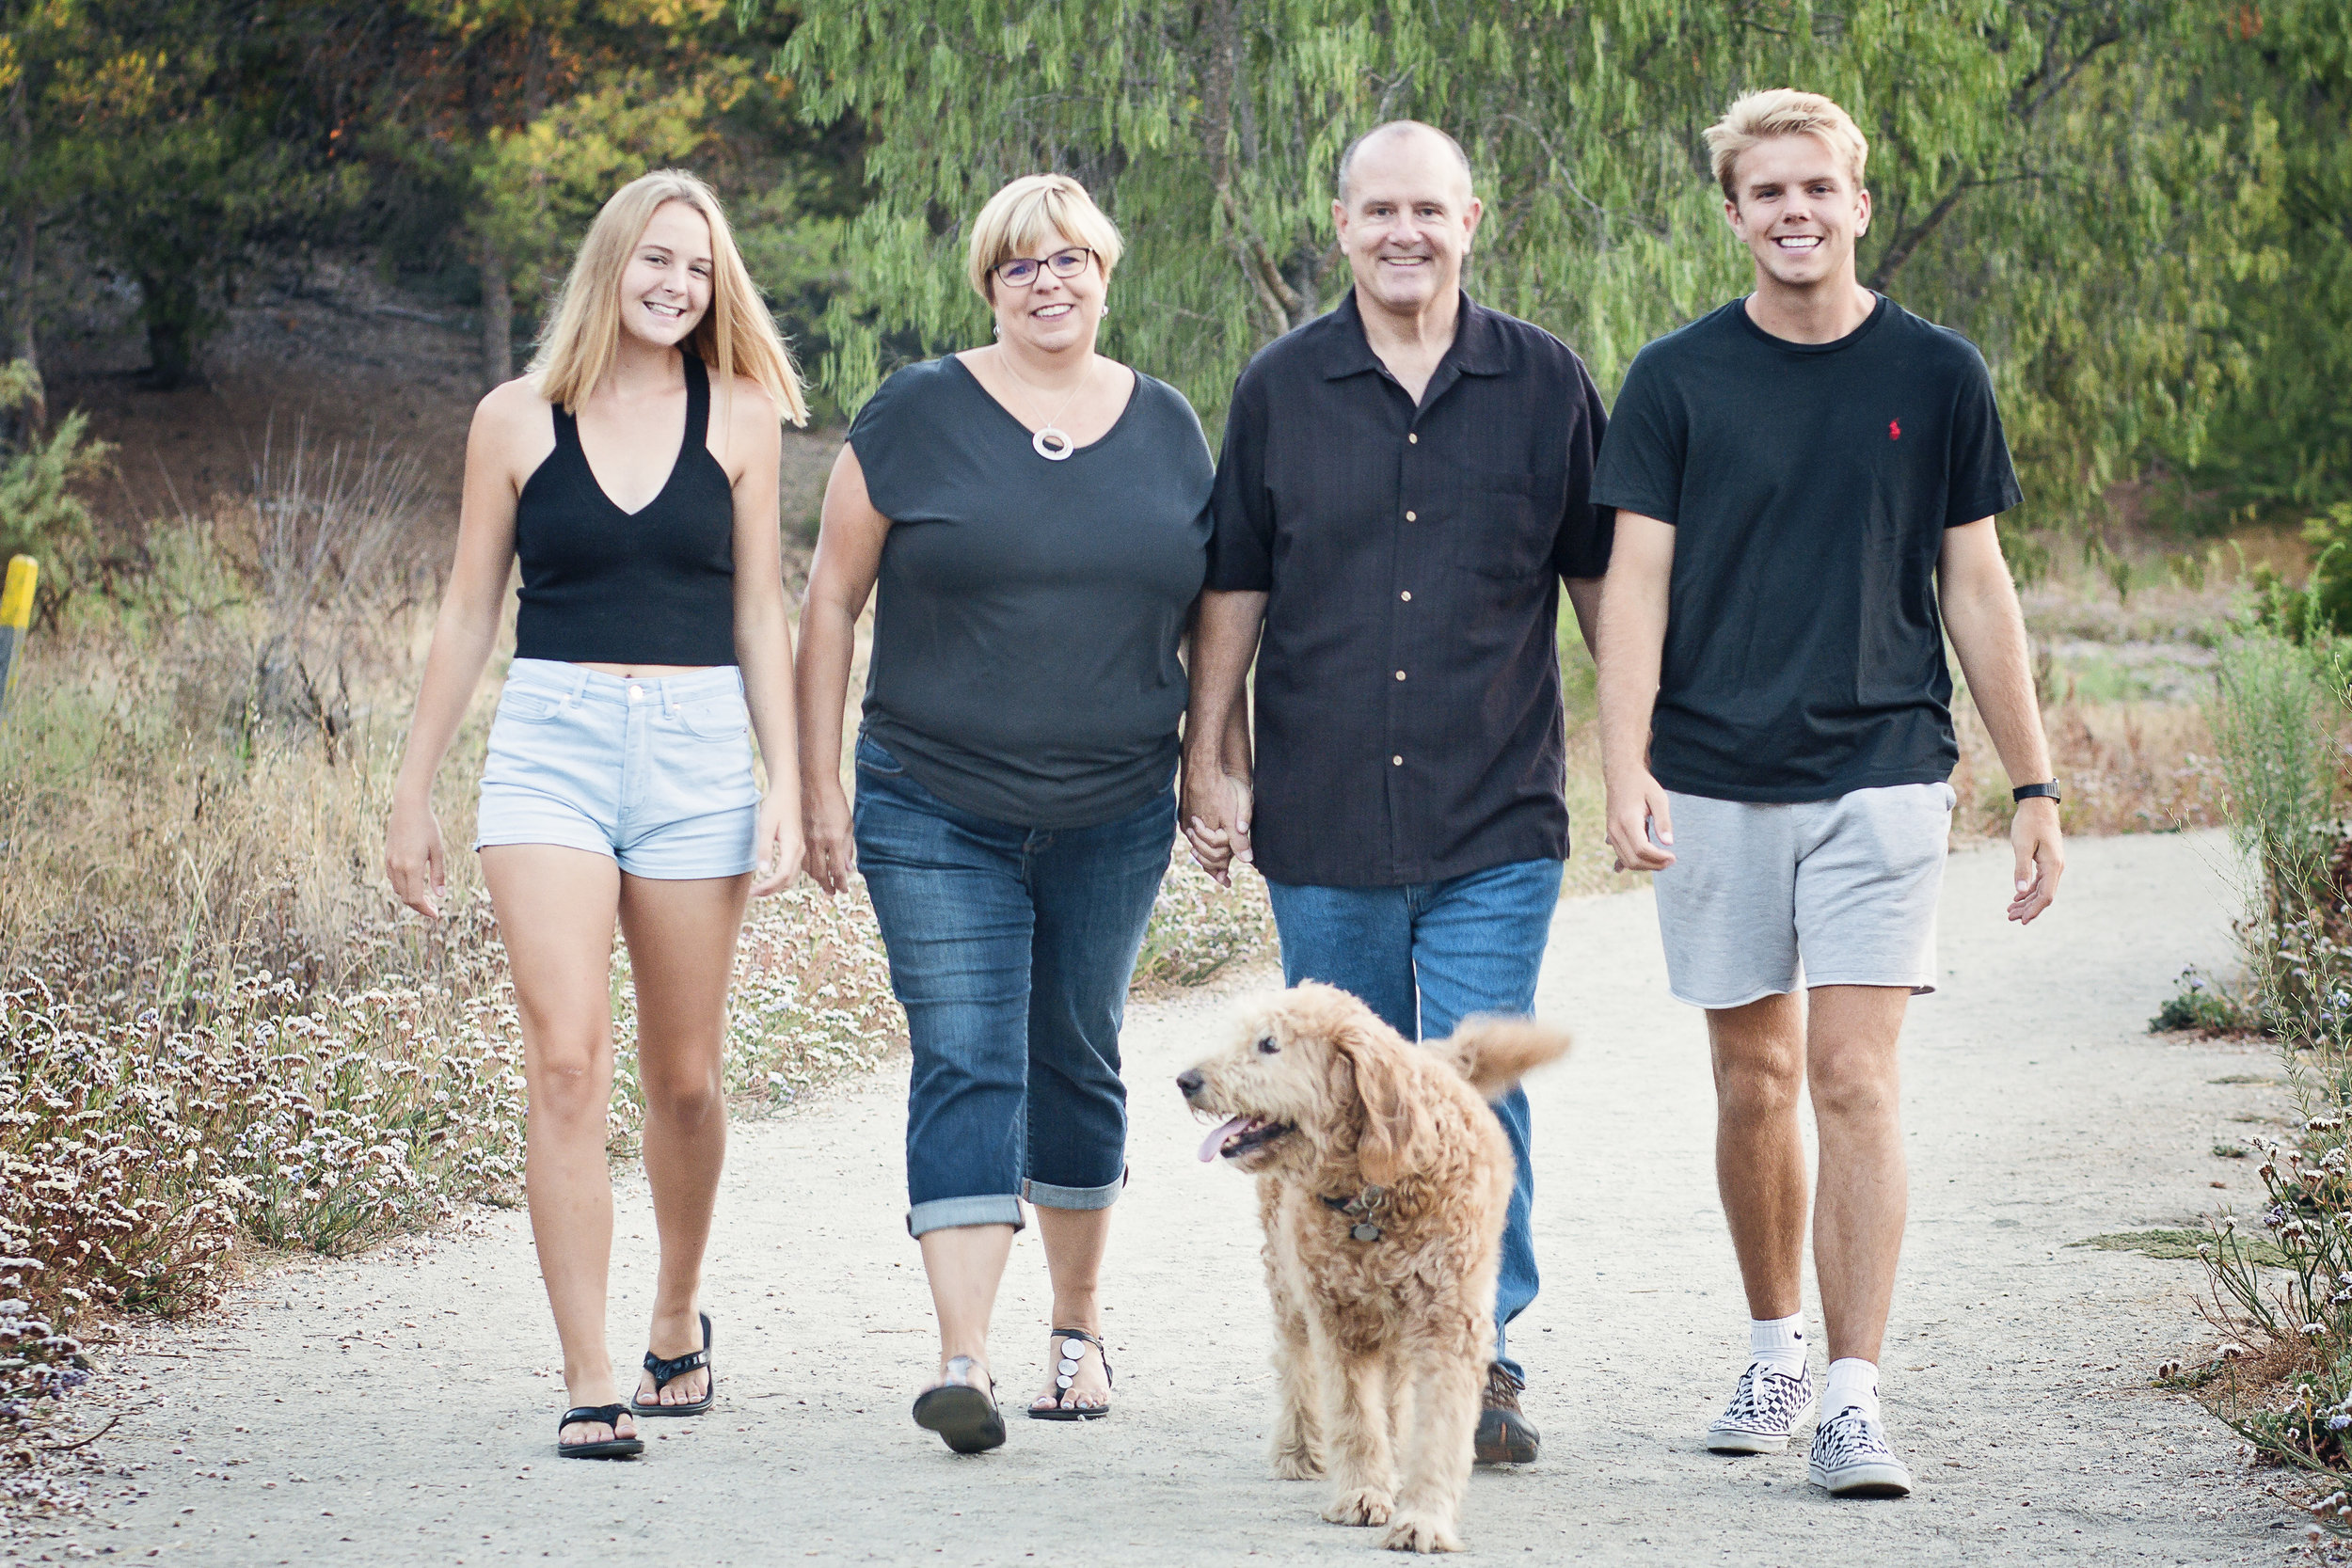 The Swanson family is matchy. They are all wearing black shirts and denim.